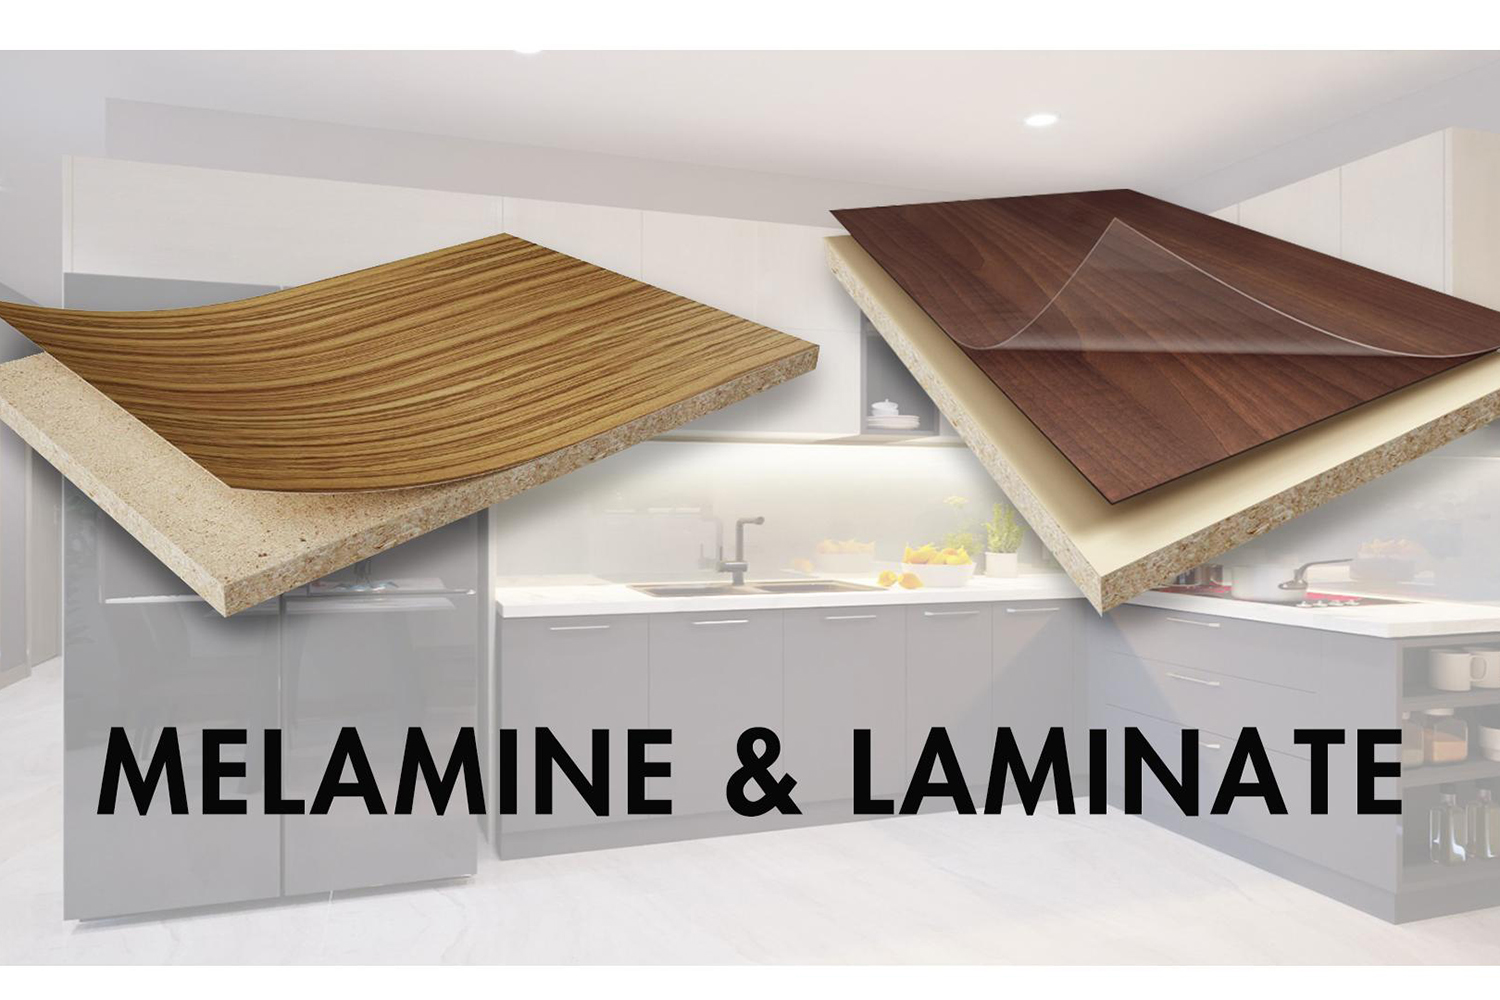 The difference between Melamine & Laminate